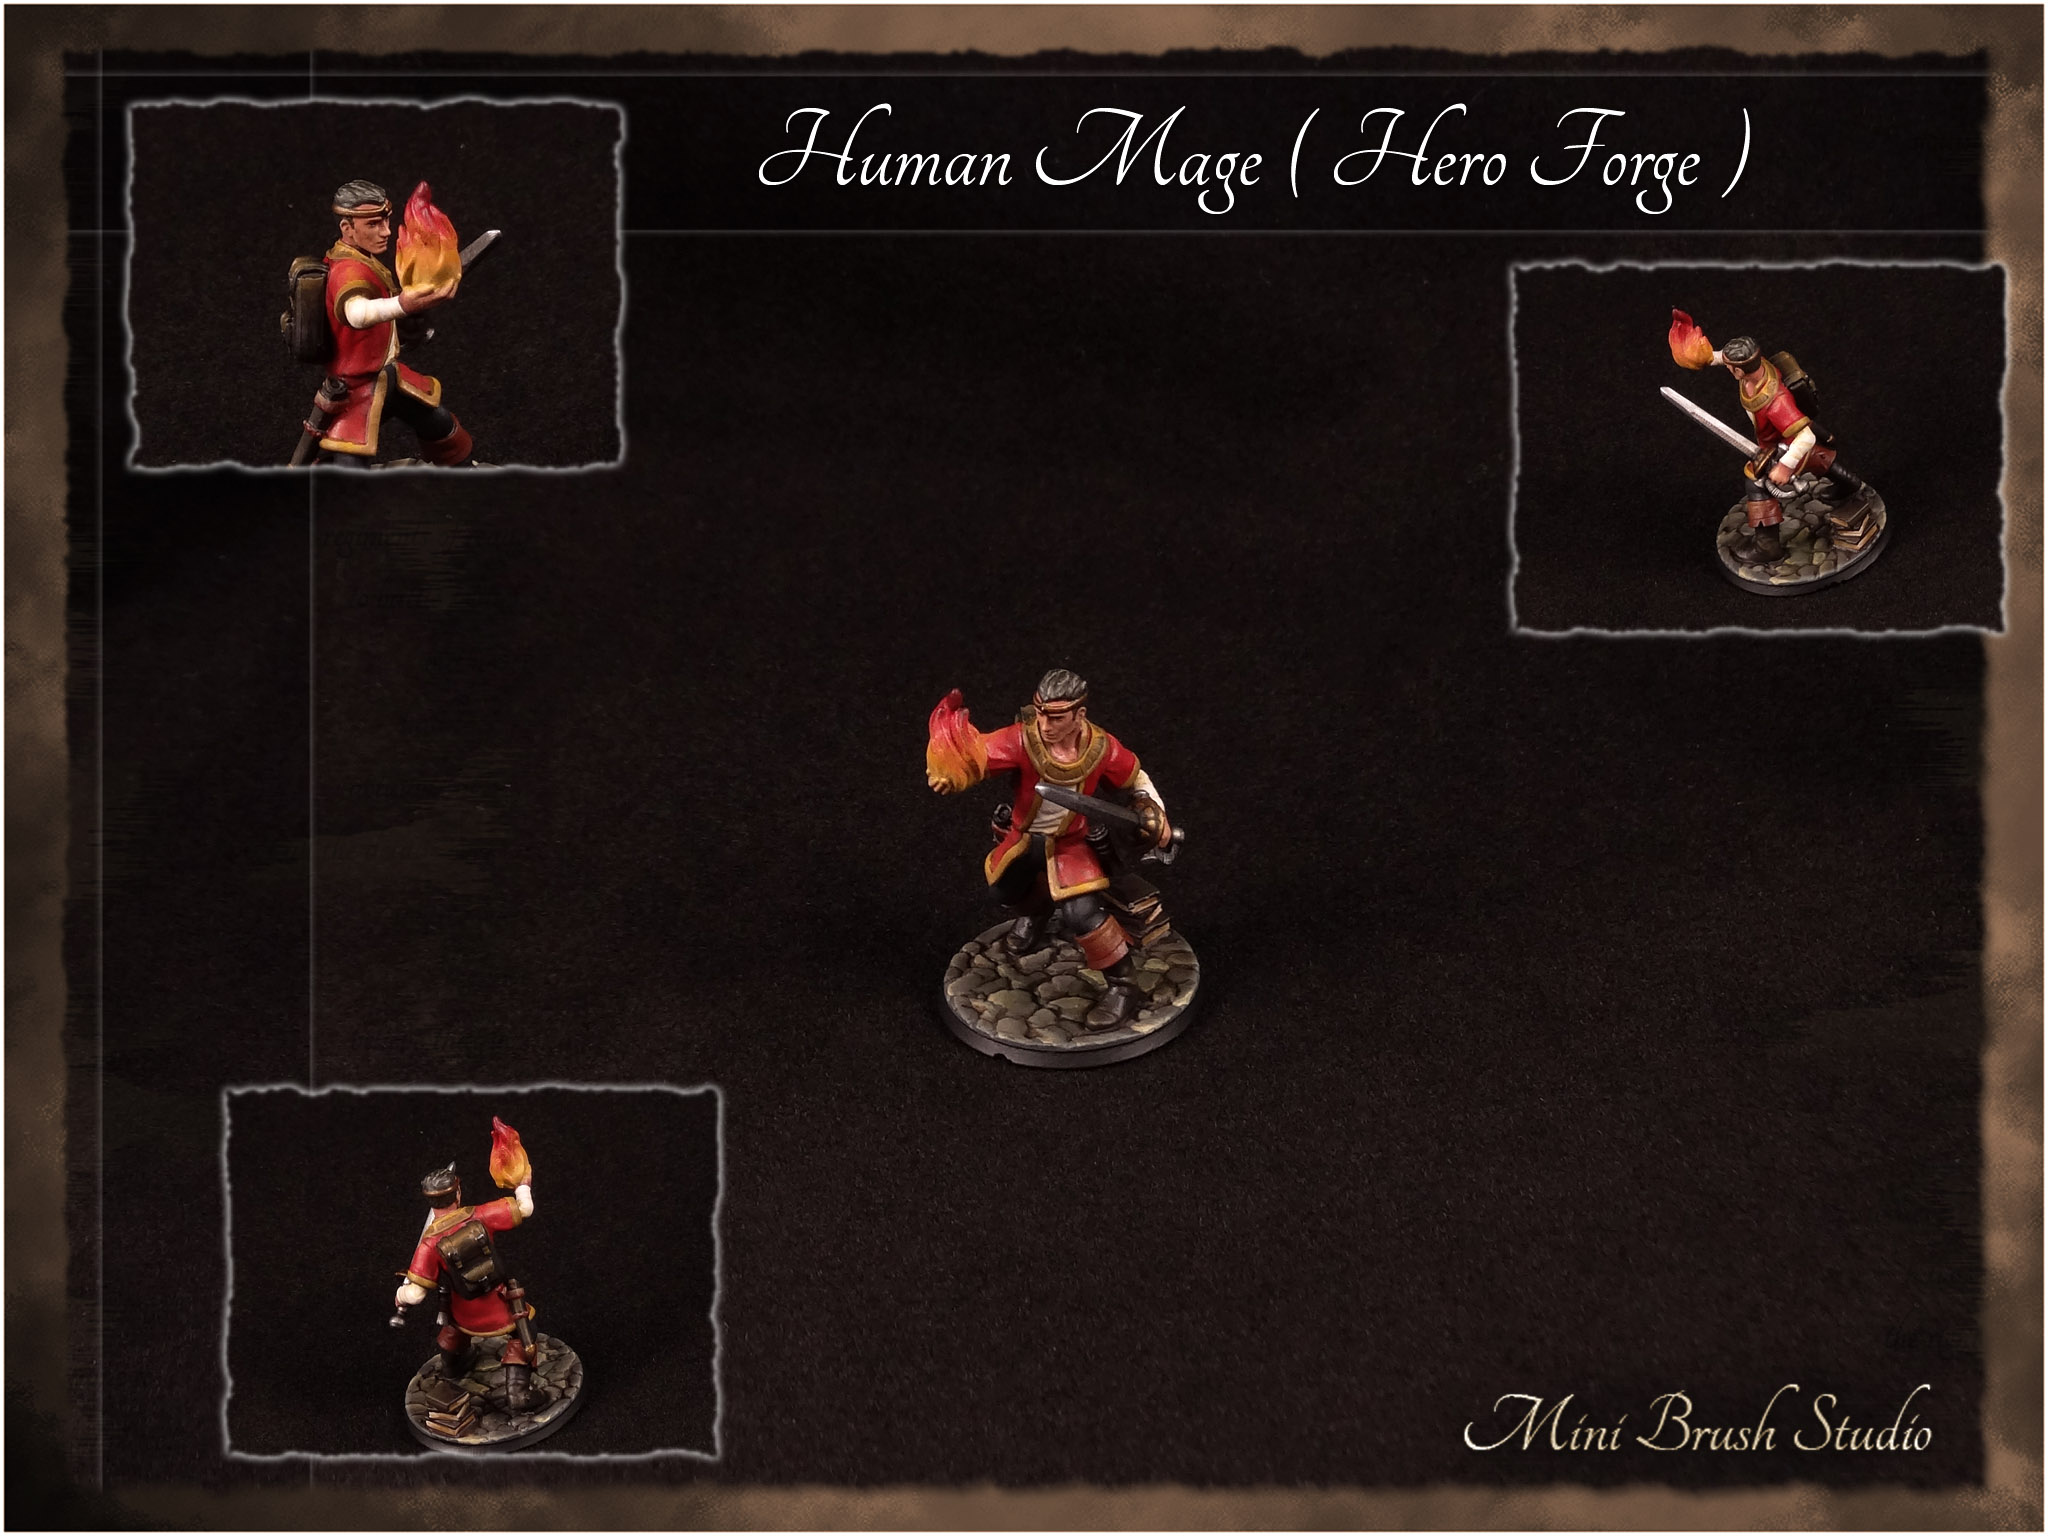 Human Mage ( Hero Forge ) 1 v7.00.jpg